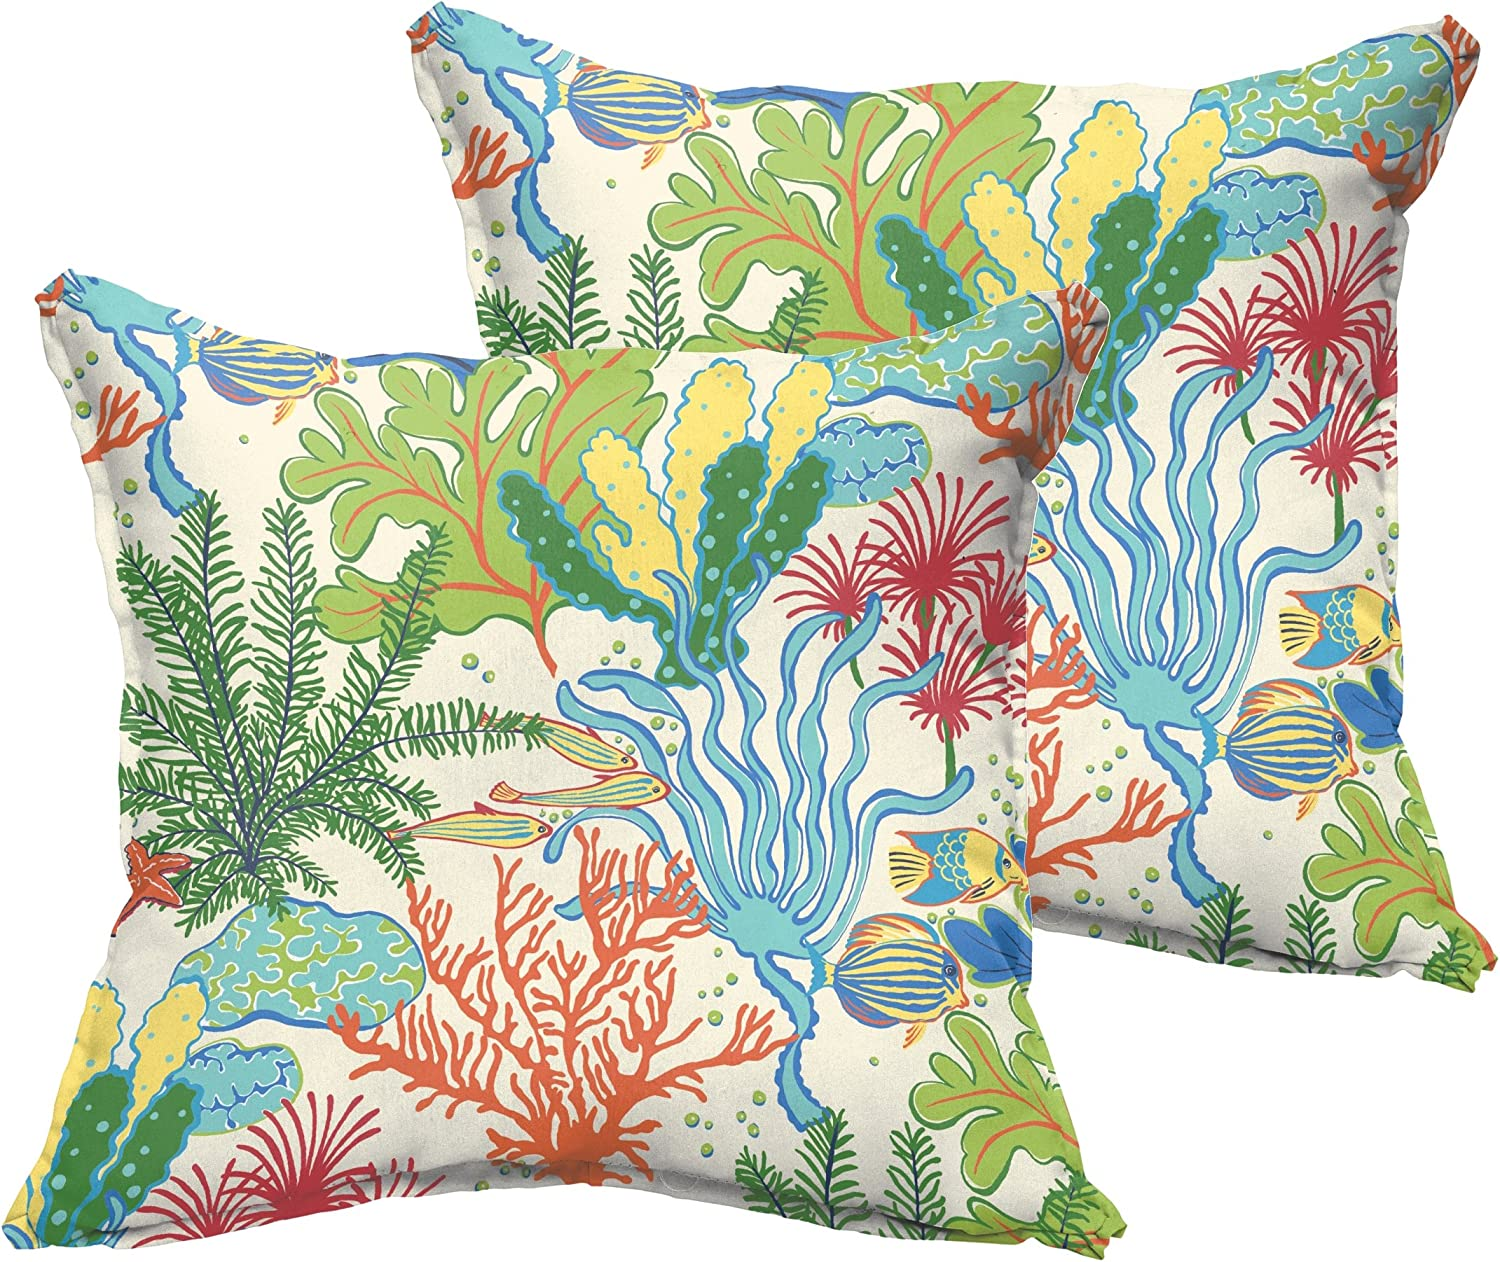 Under The Under The Sea 16 inches Set of 2 Mozaic AZPS7676 Indoor Outdoor Square Pillows